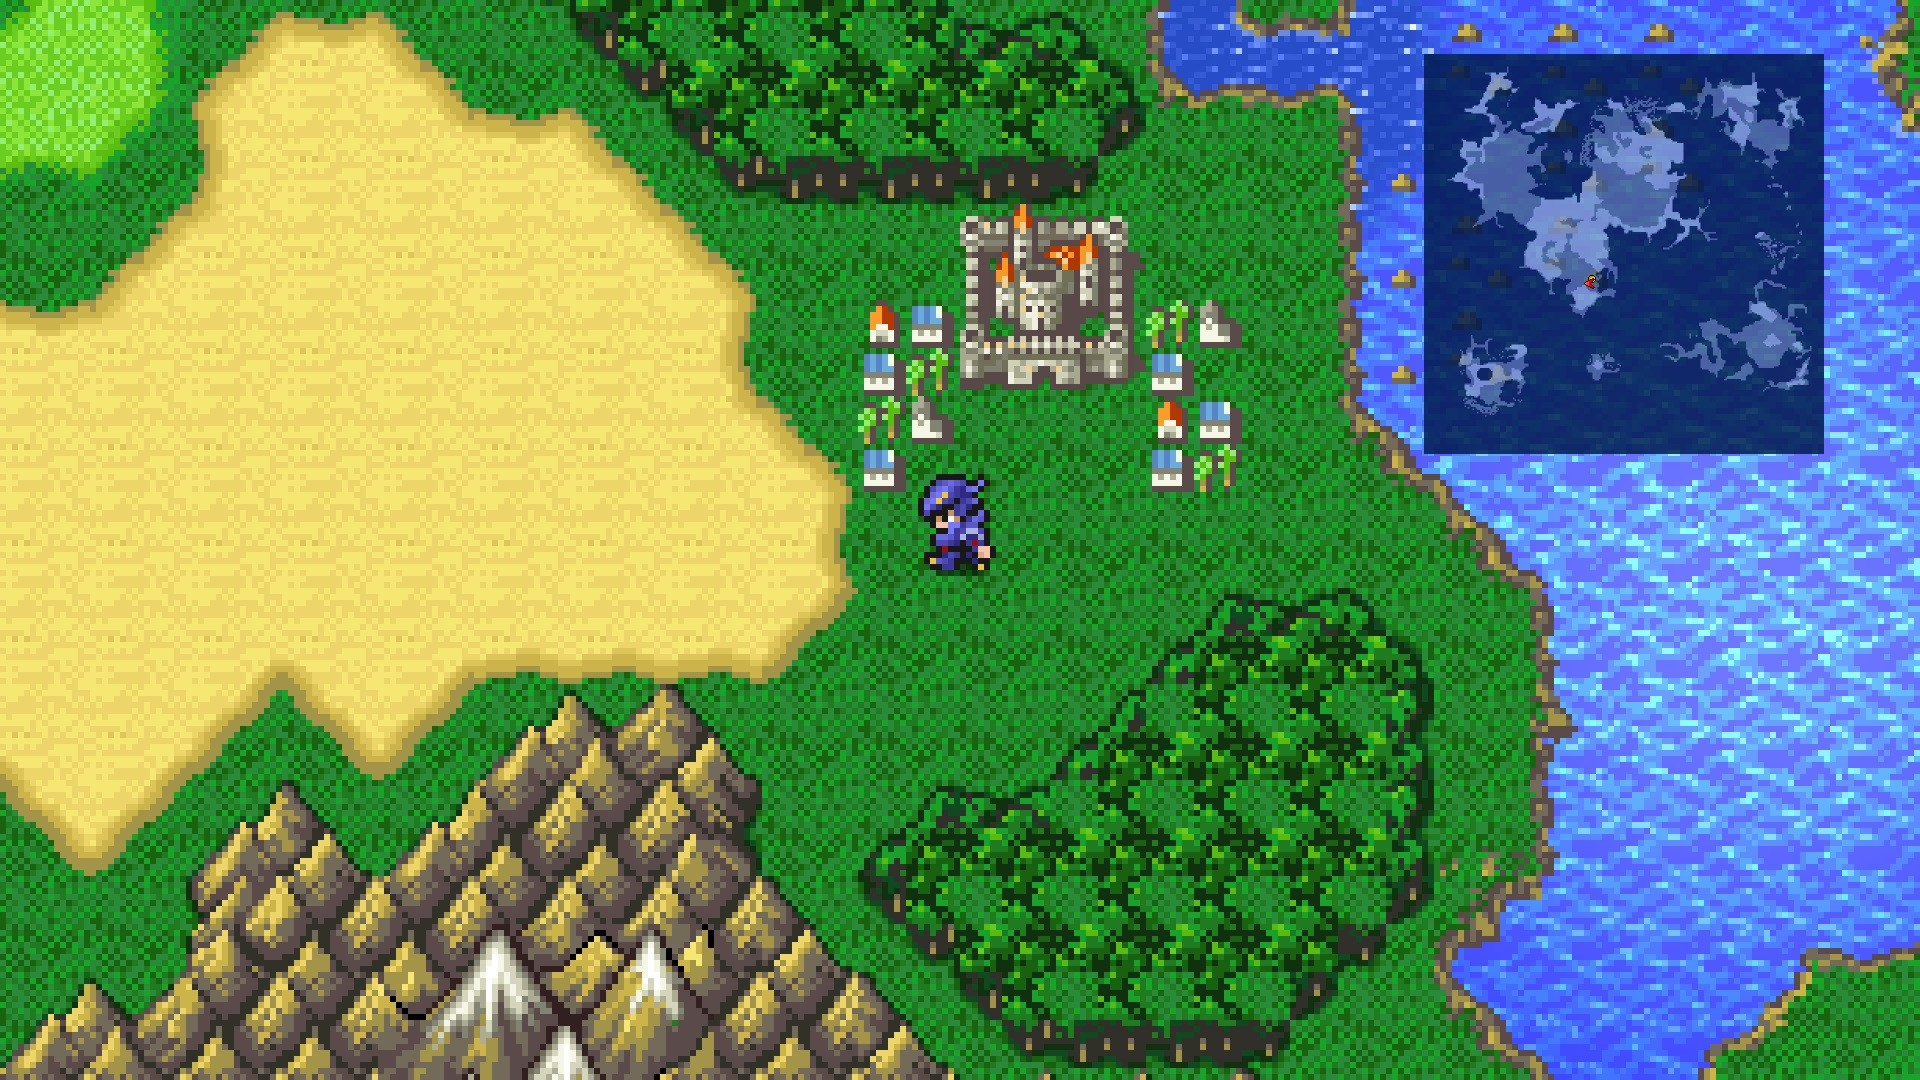 FINAL FANTASY IV - How to Fix Forest Tile MOD - Screenshots & Download - 7F0152F